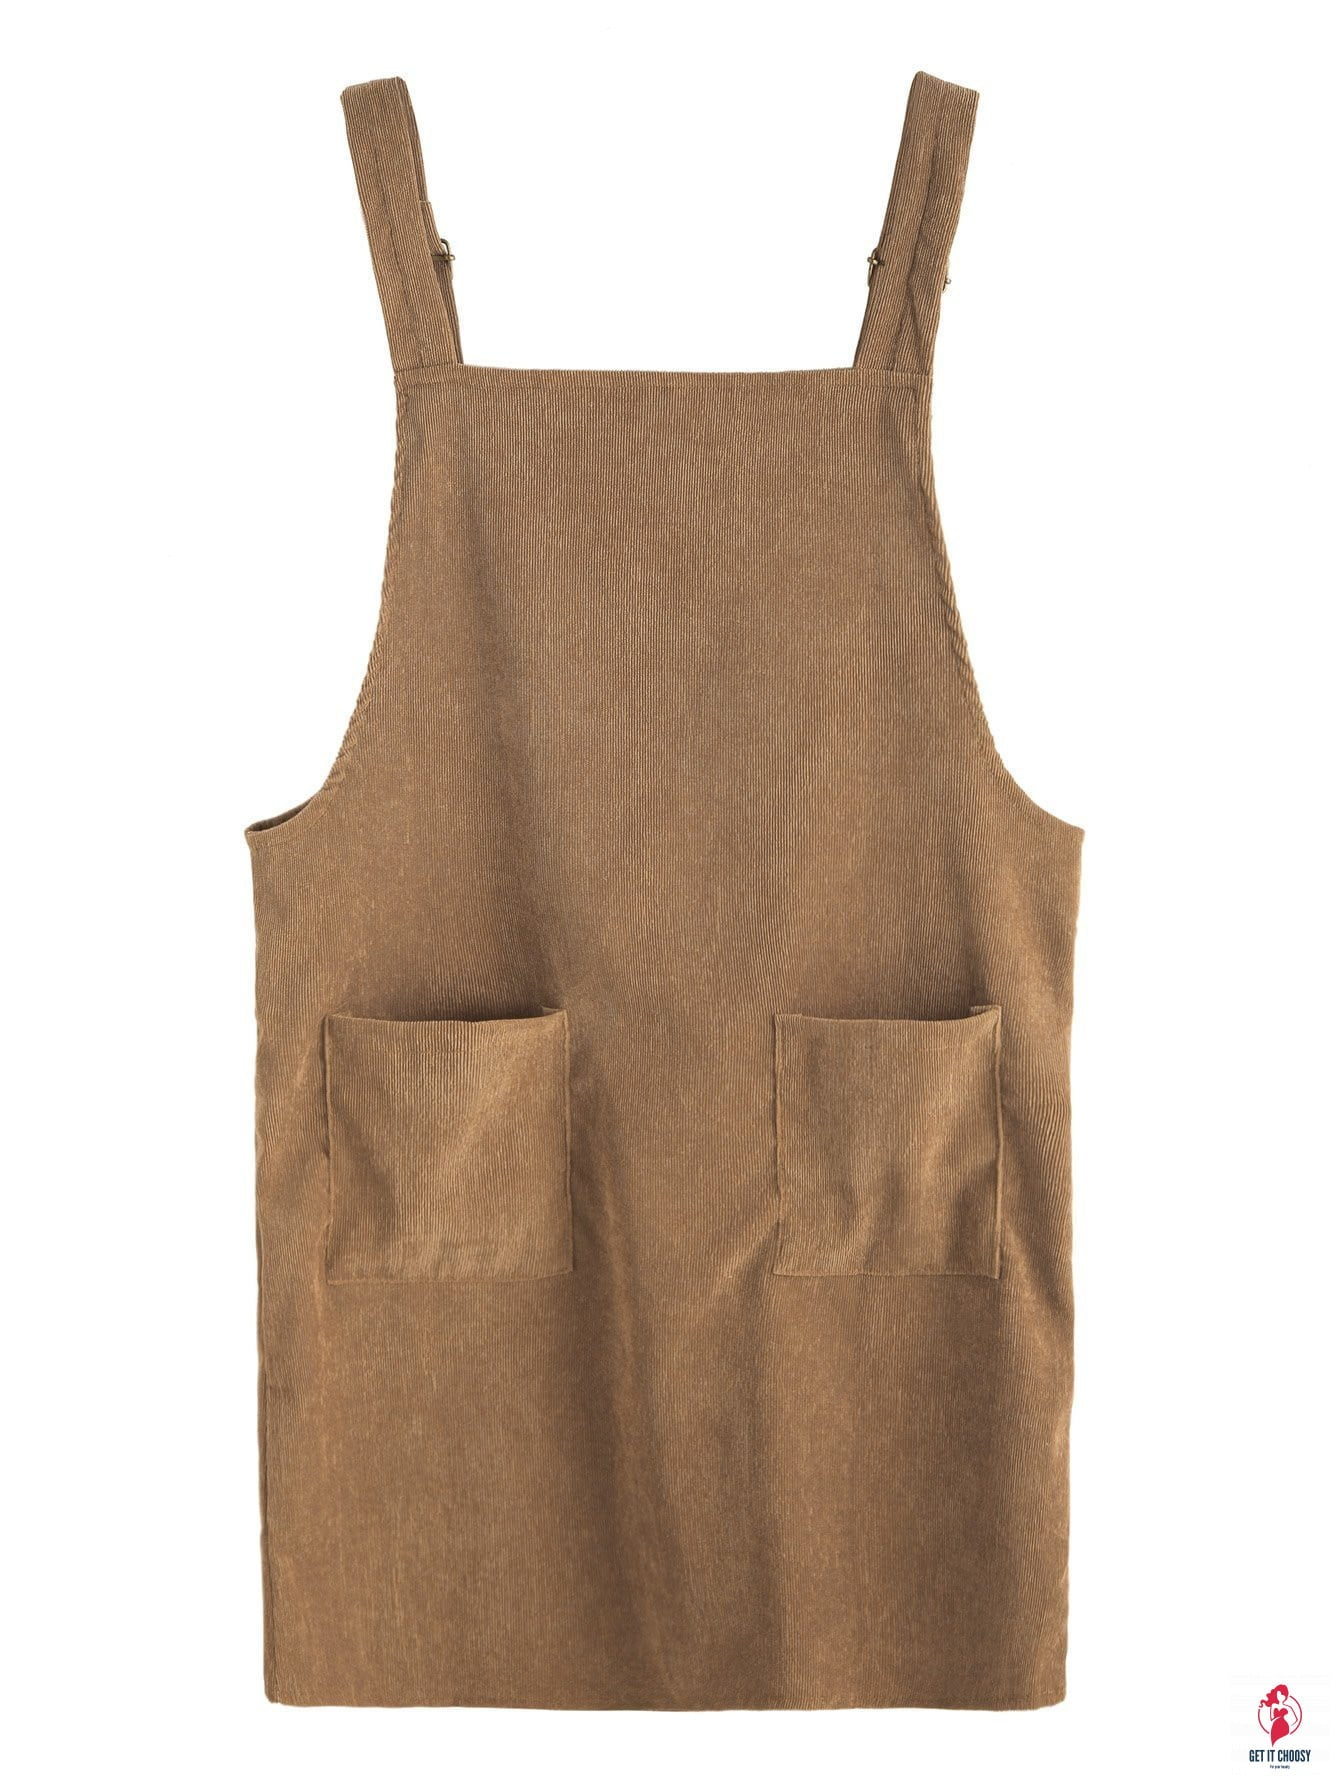 Khaki Corduroy Pinafore Dress With Pocket by Getitchoosy